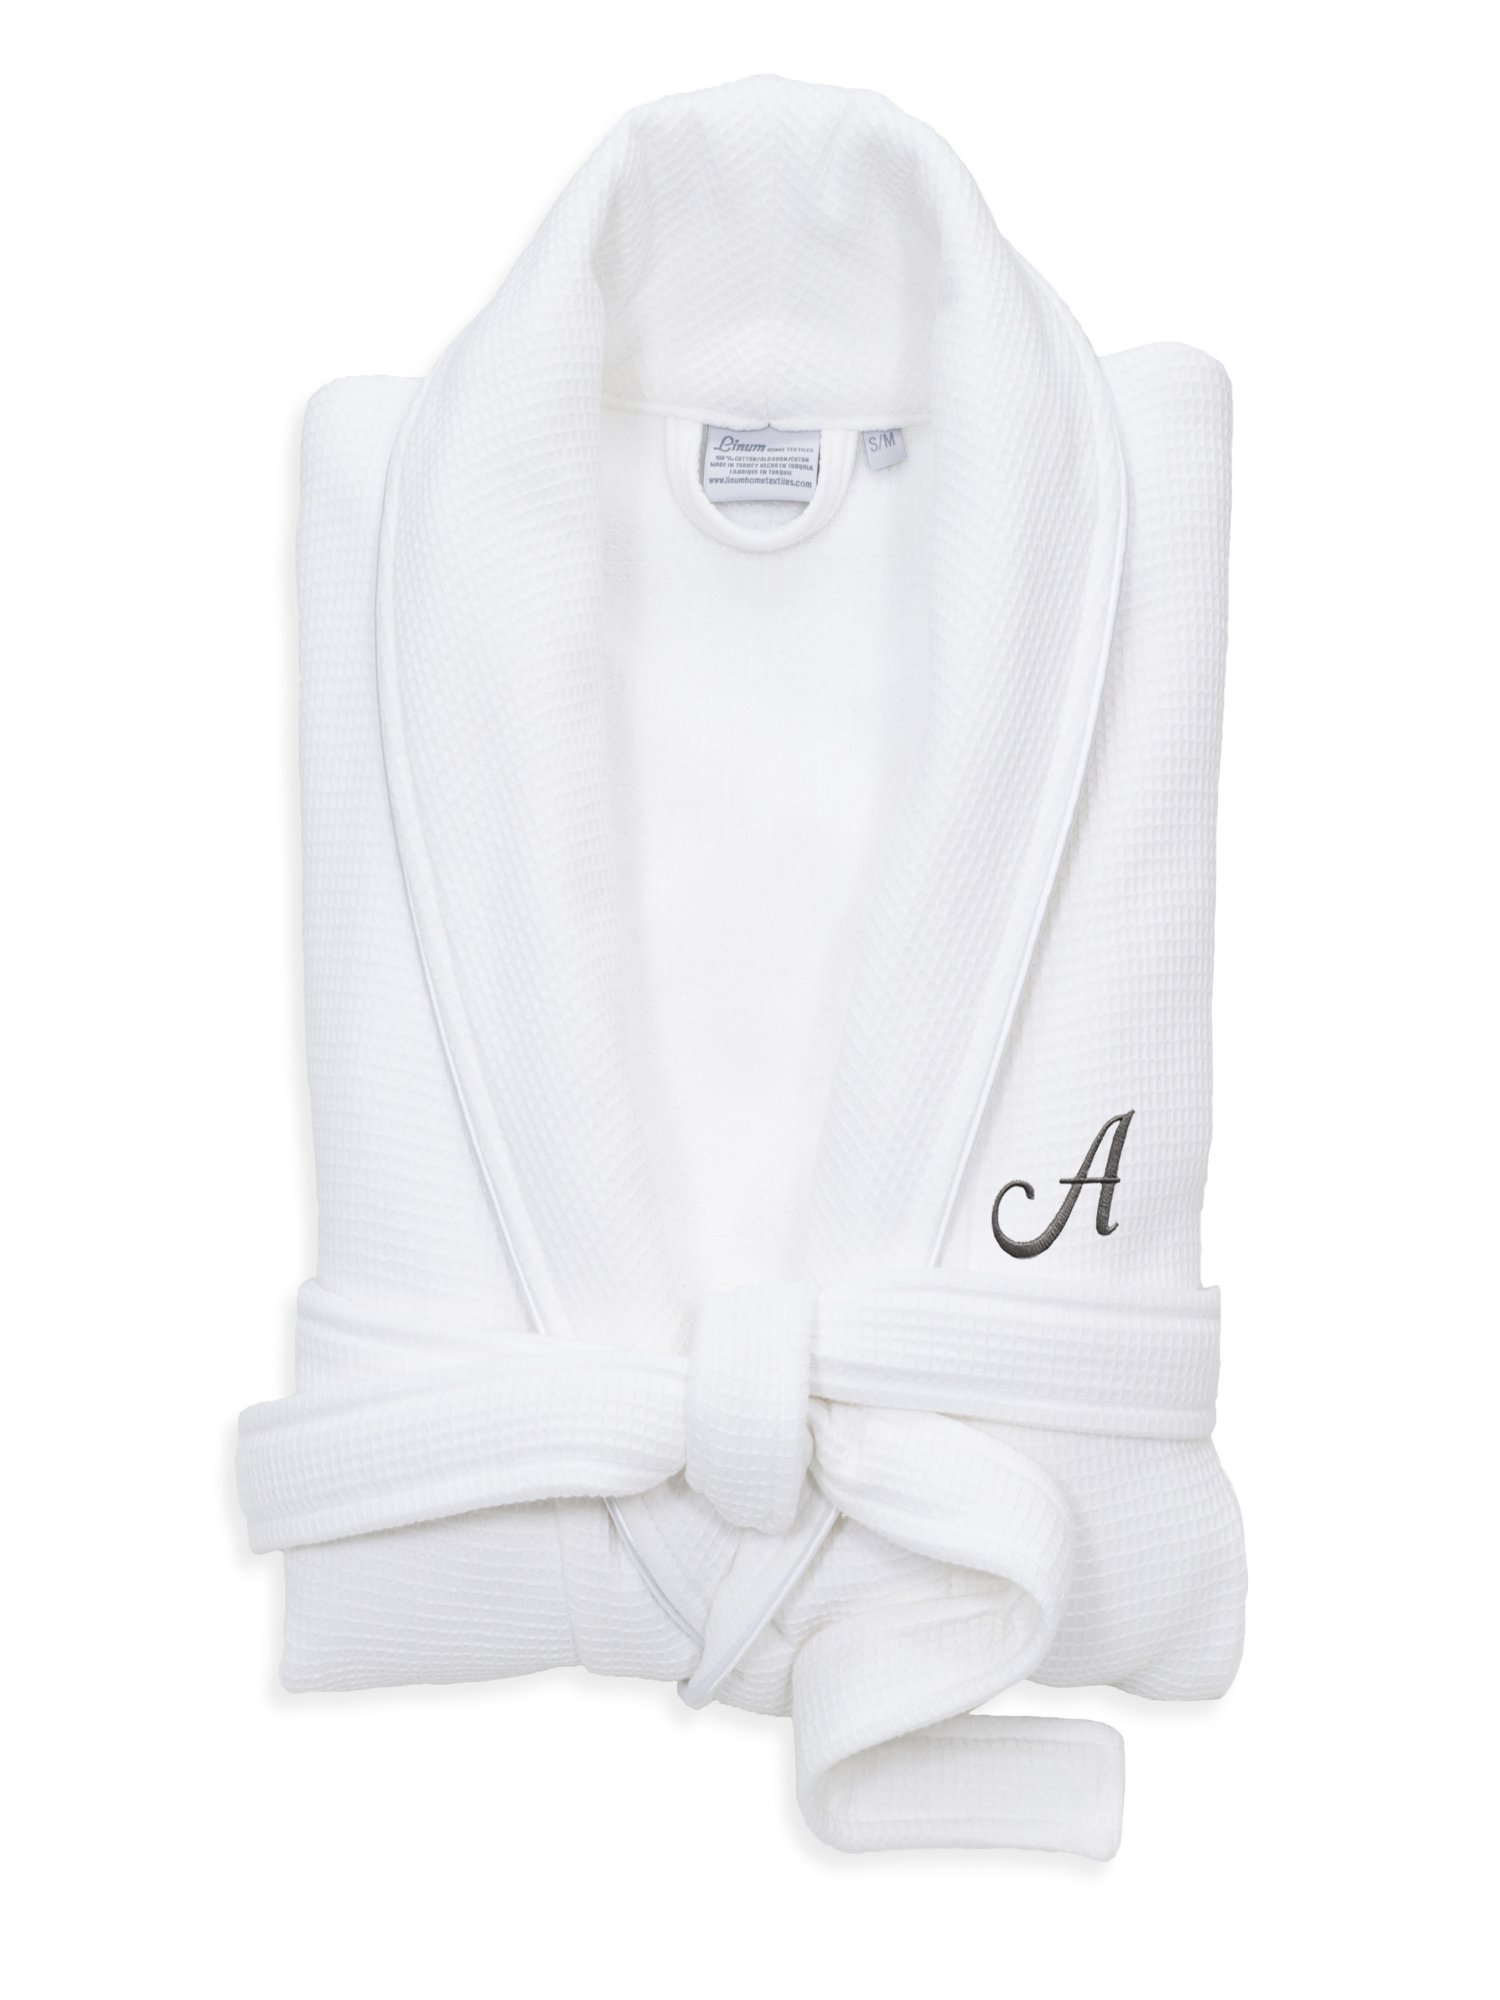 Linum Home Textiles - Linum Home Textiles Hotel Turkish Cotton Waffle Terry  Bathrobe with Satin Piped Trim - Personalized - White - Walmart.com 624e97a80